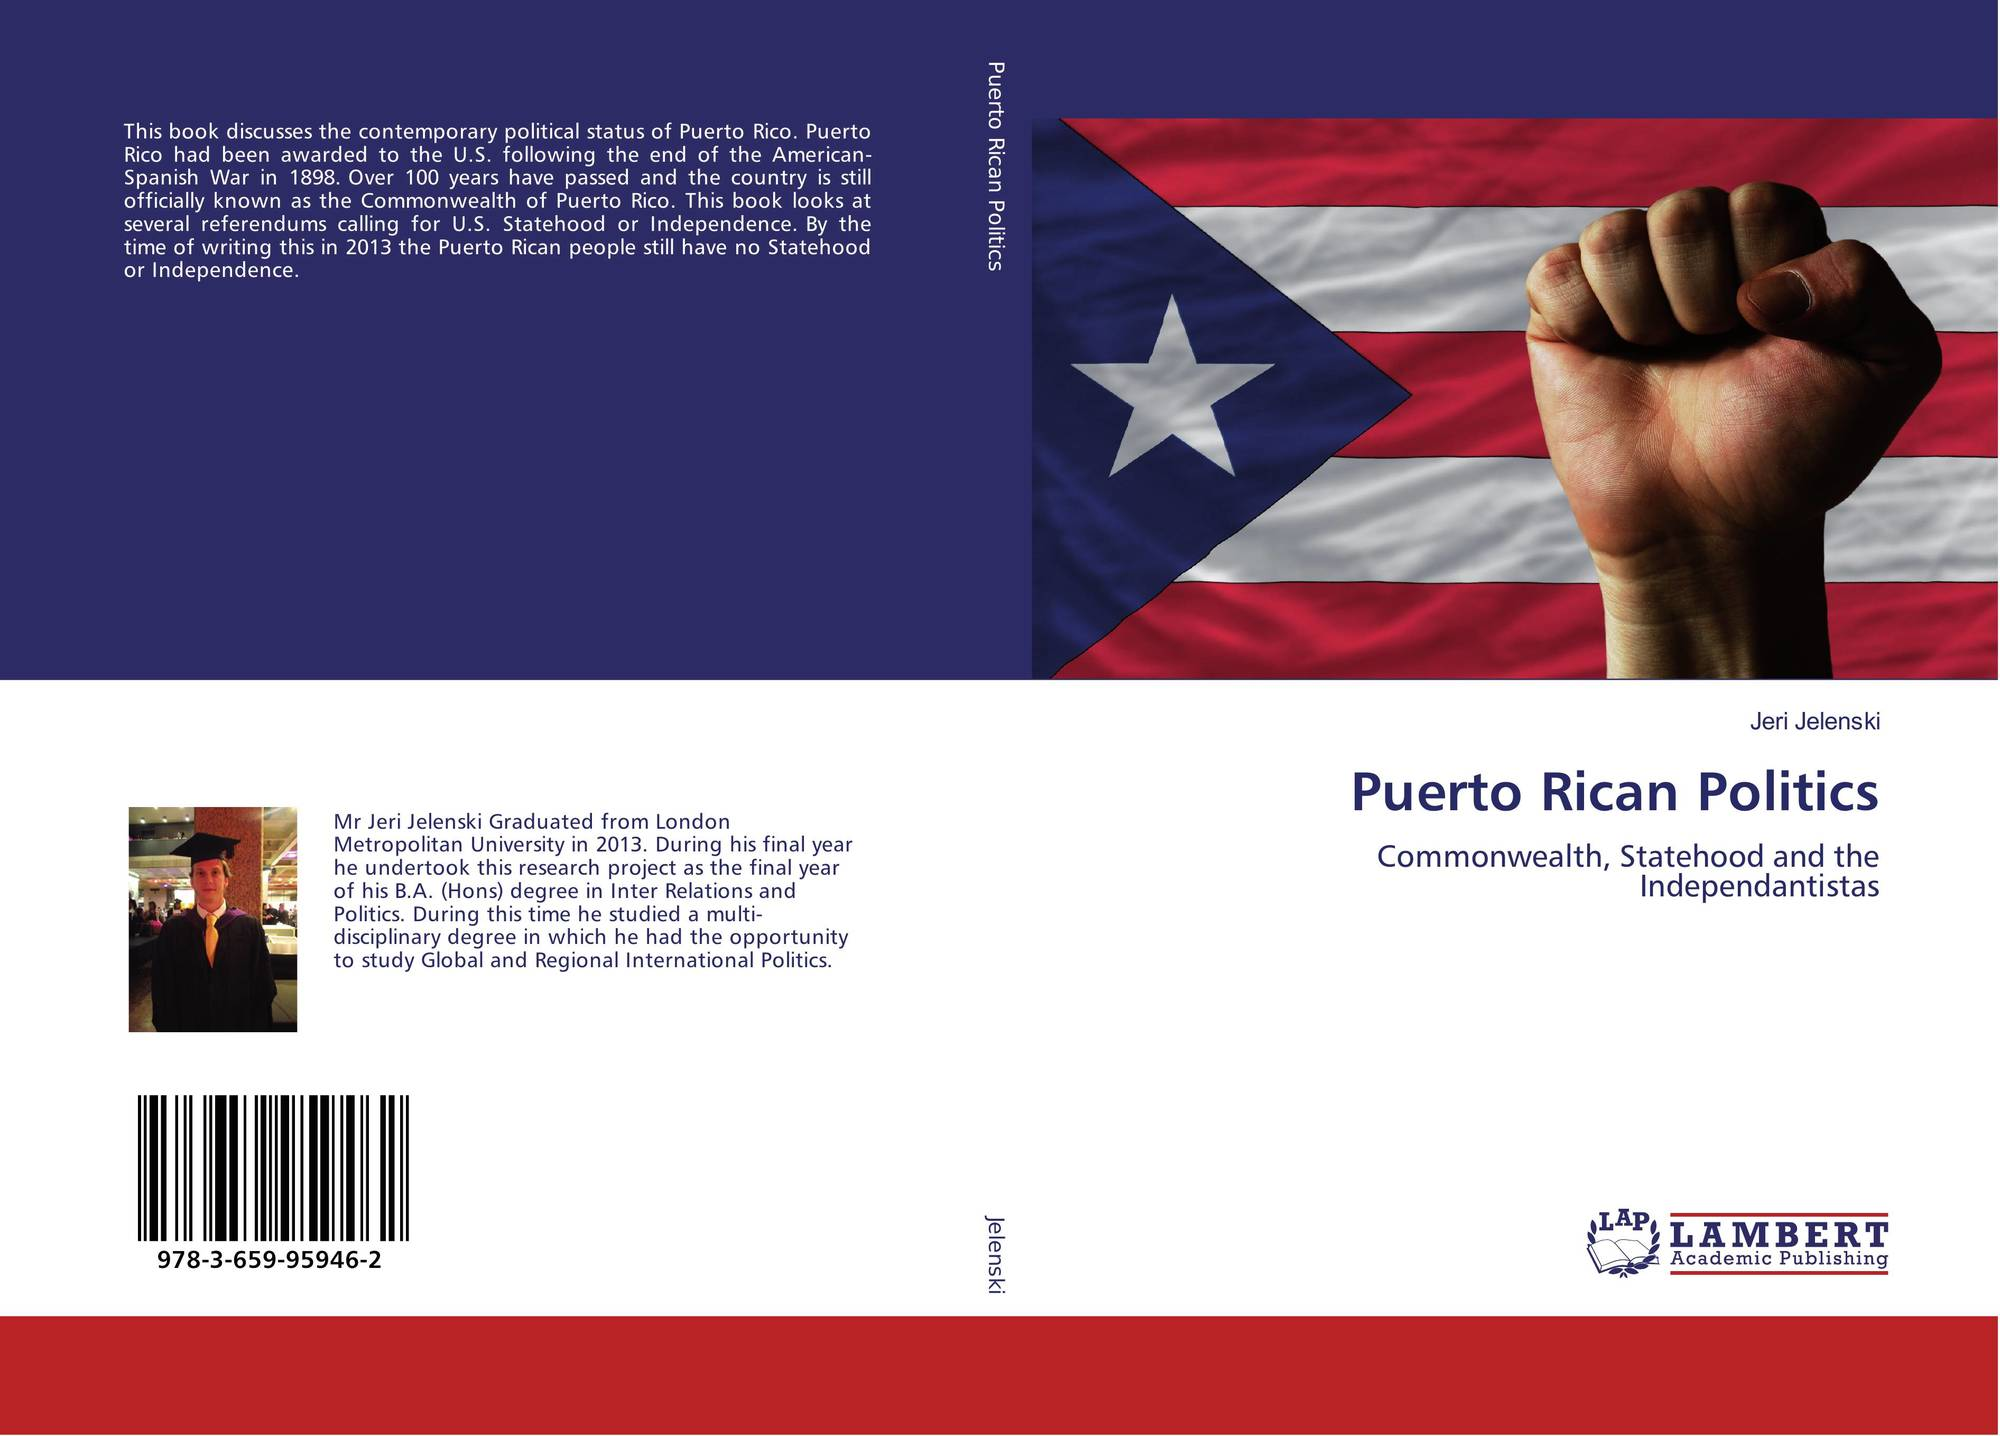 an introduction to the commonwealth of the puerto rico and its culture Free puerto rico papers, essays, and puerto rico is currently a commonwealth of the united states and the history and culture of puerto ricans - the history.